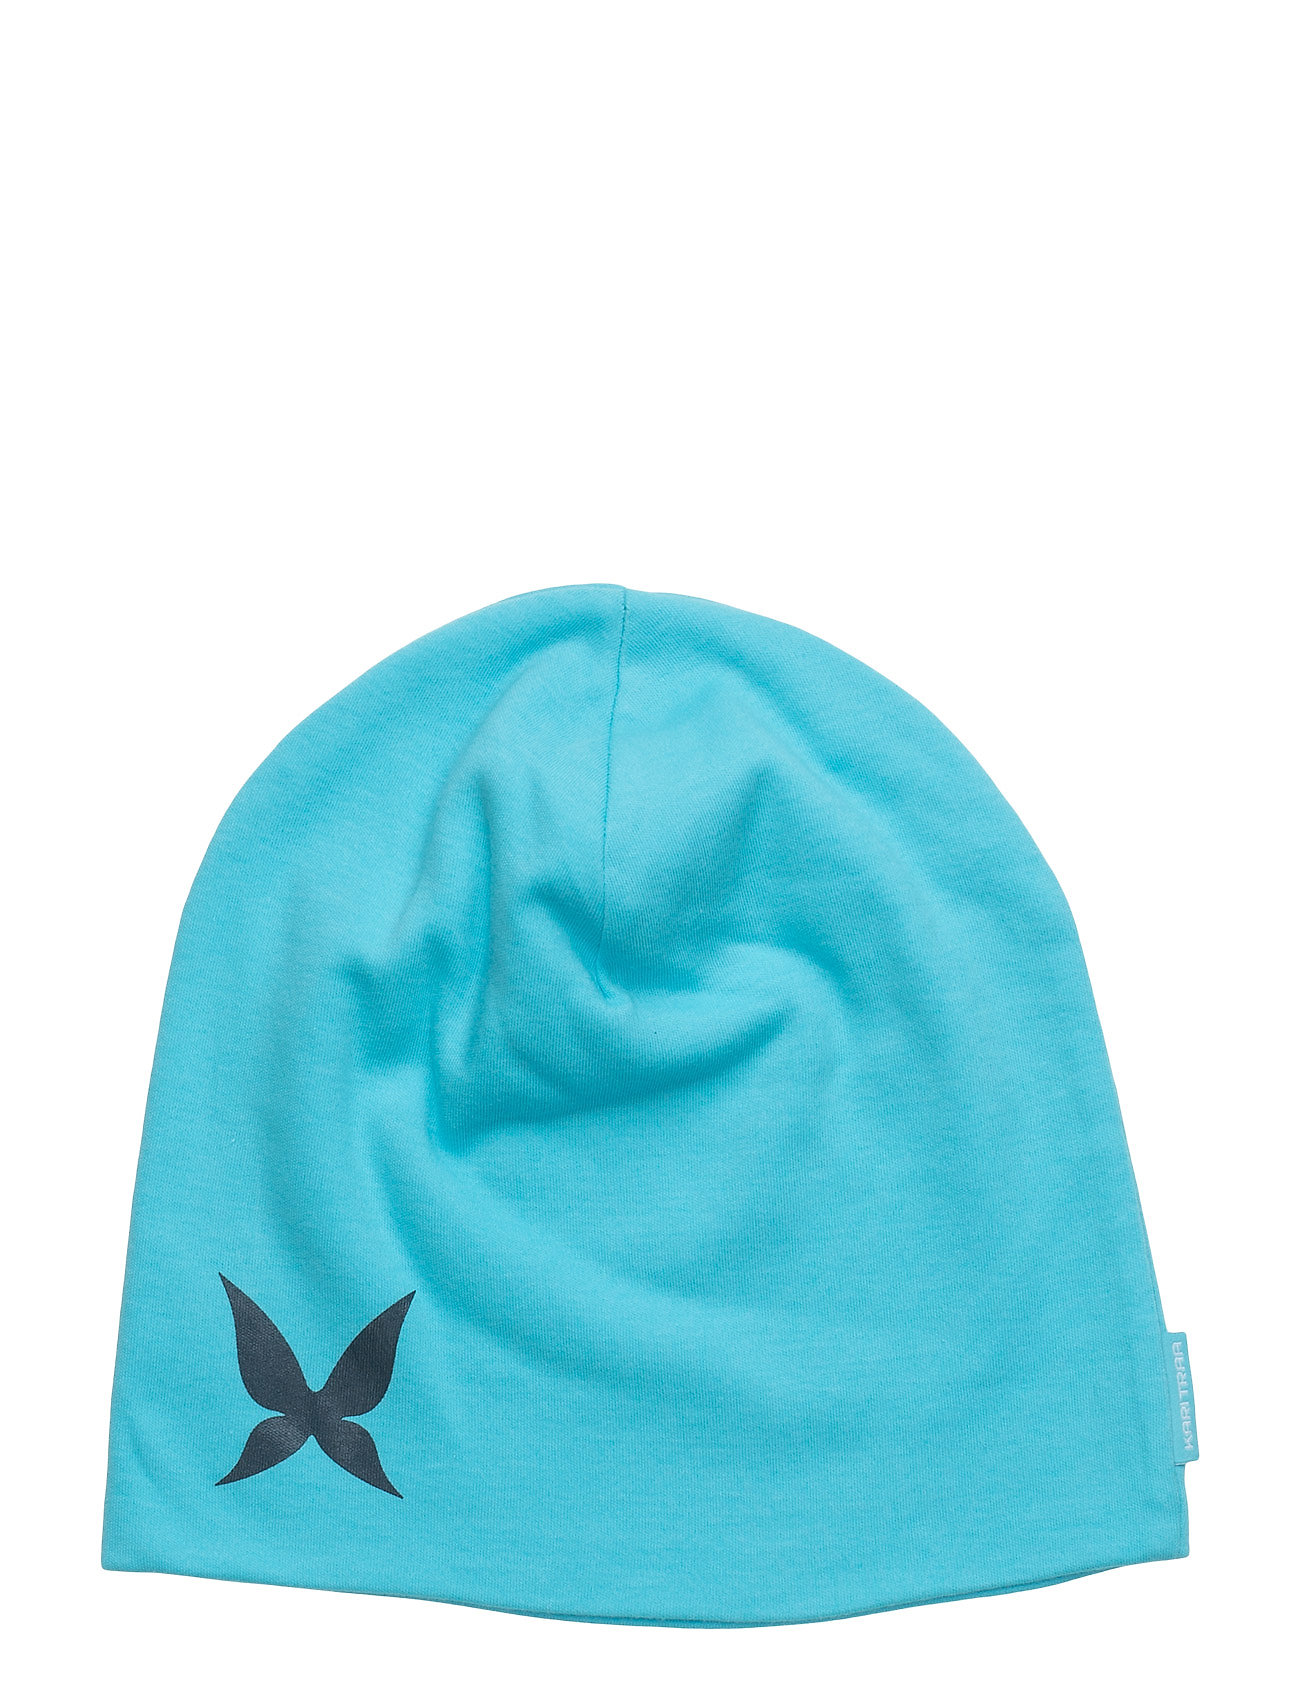 d3847c656 Kari Traa Traa Beanie (Lblue), (10 €) | Large selection of outlet ...